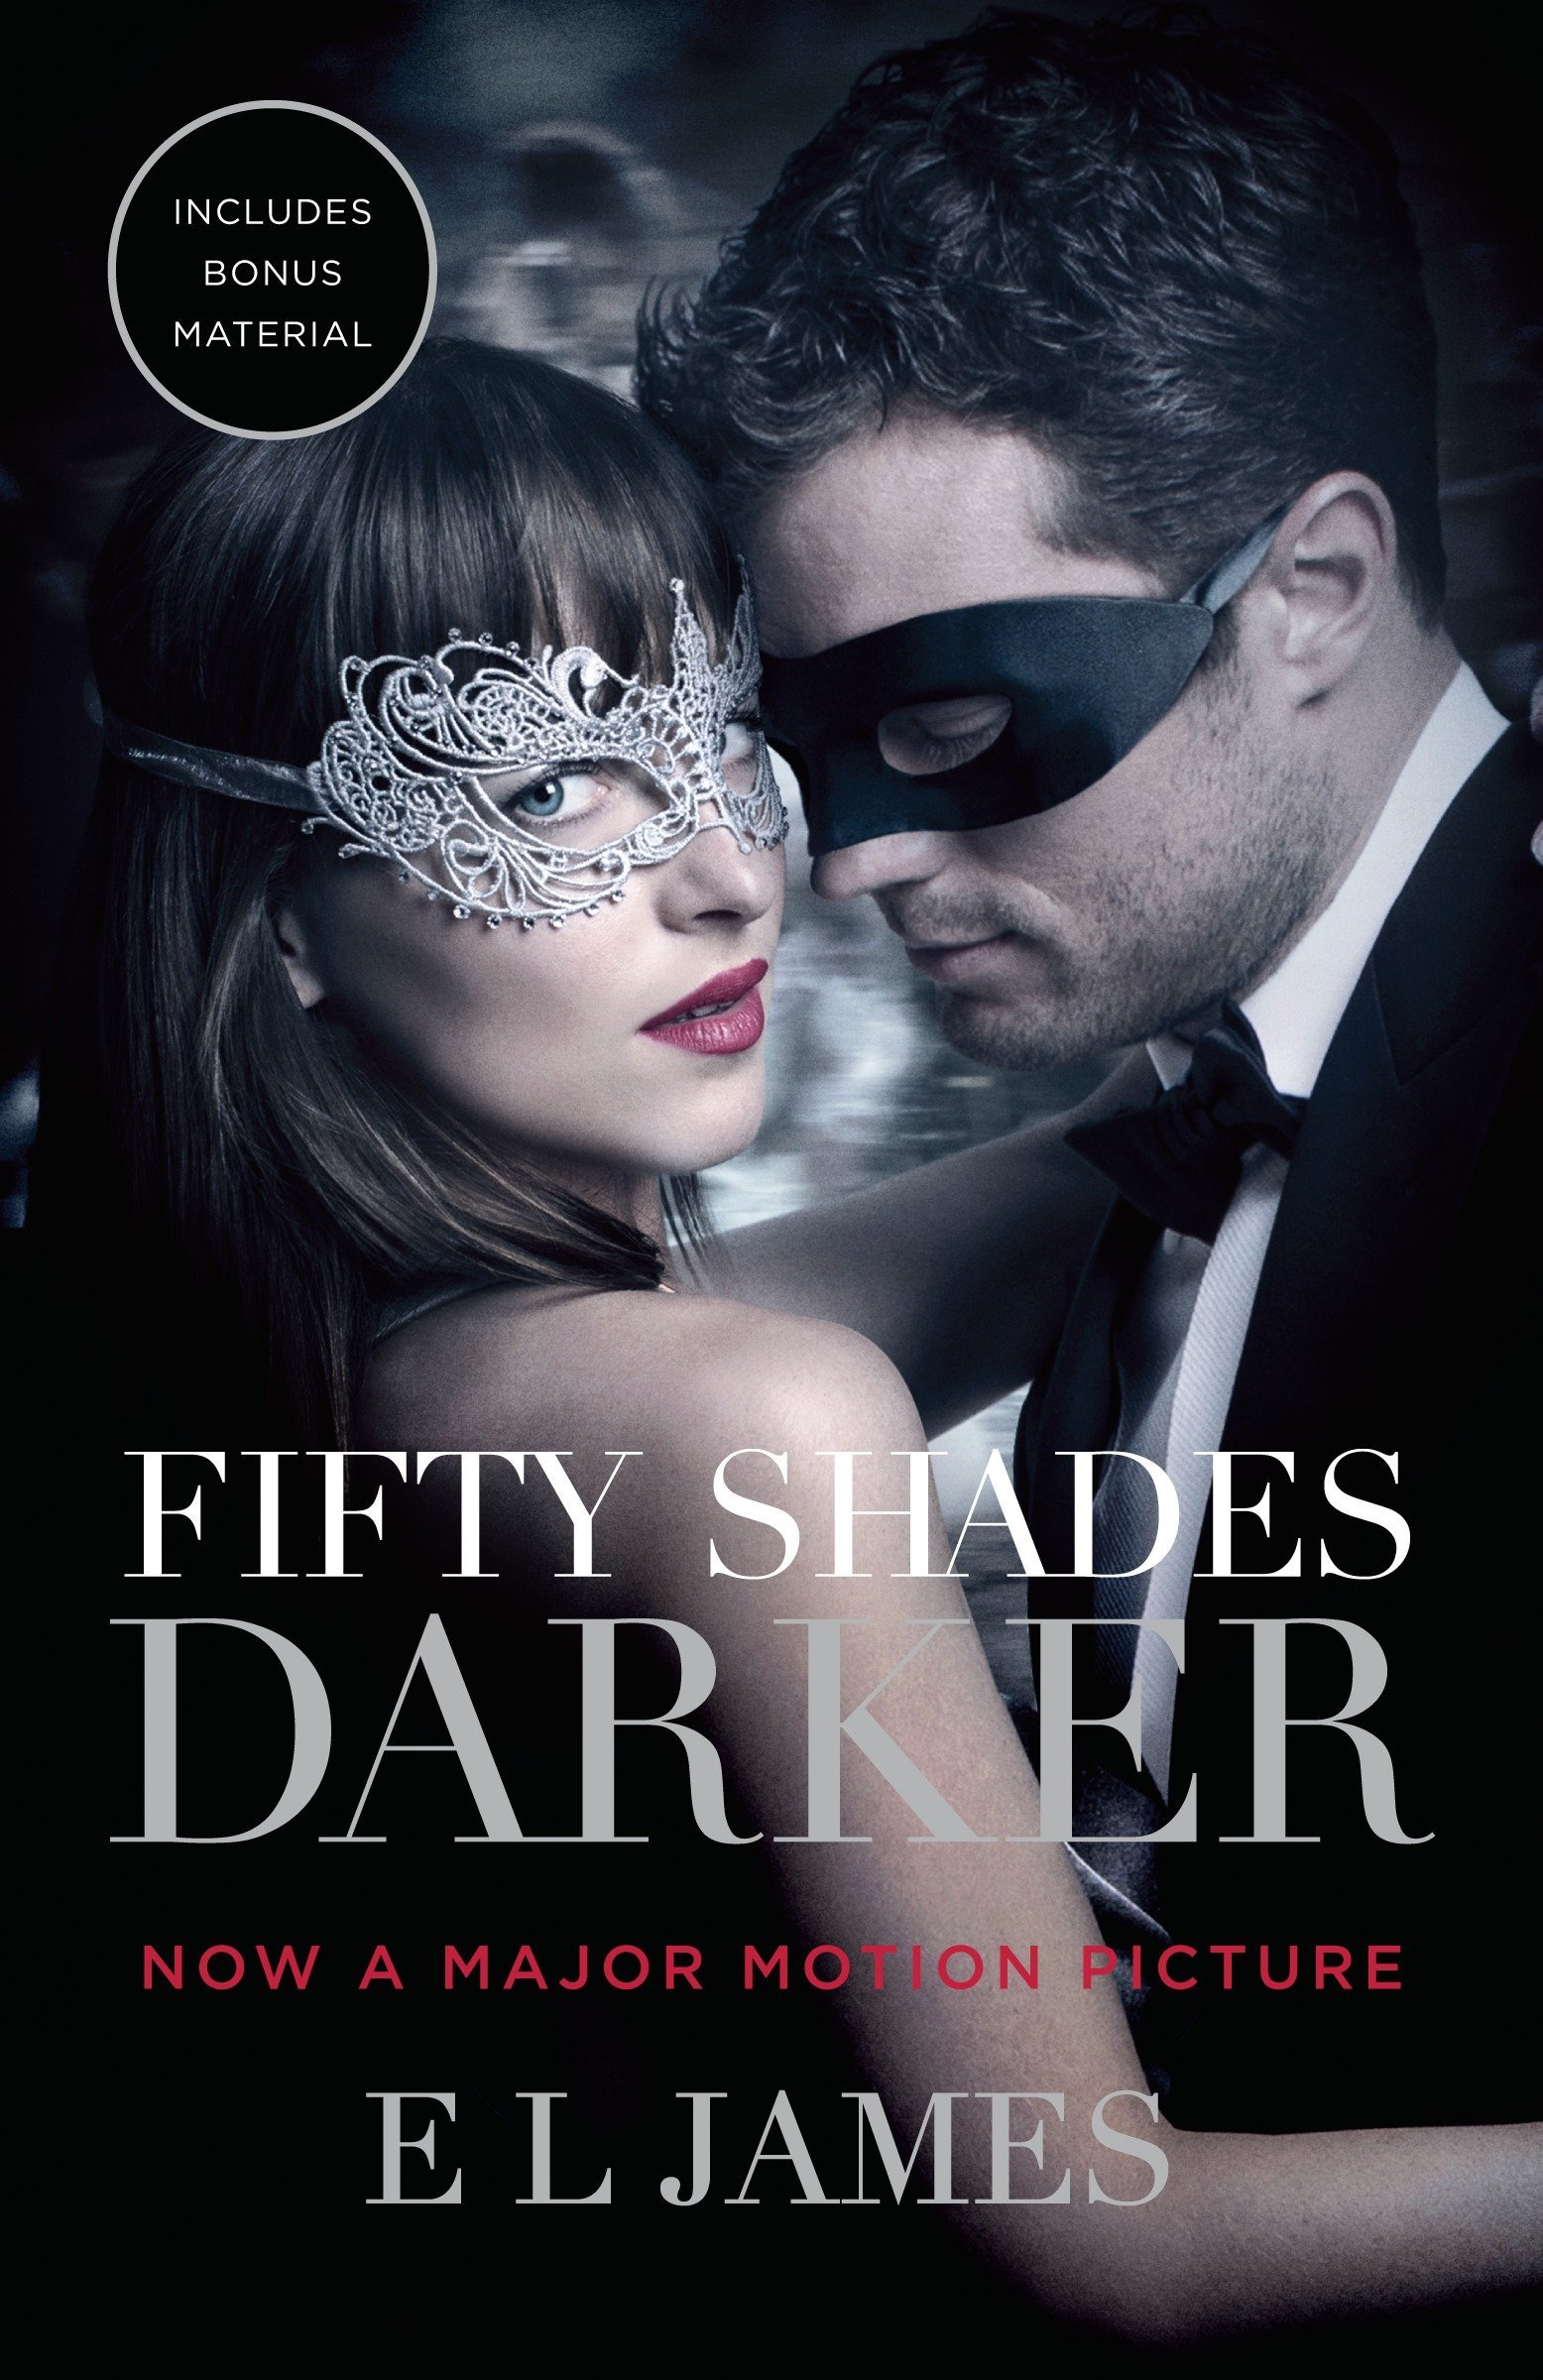 fifty shades darker full movie free download for mobile